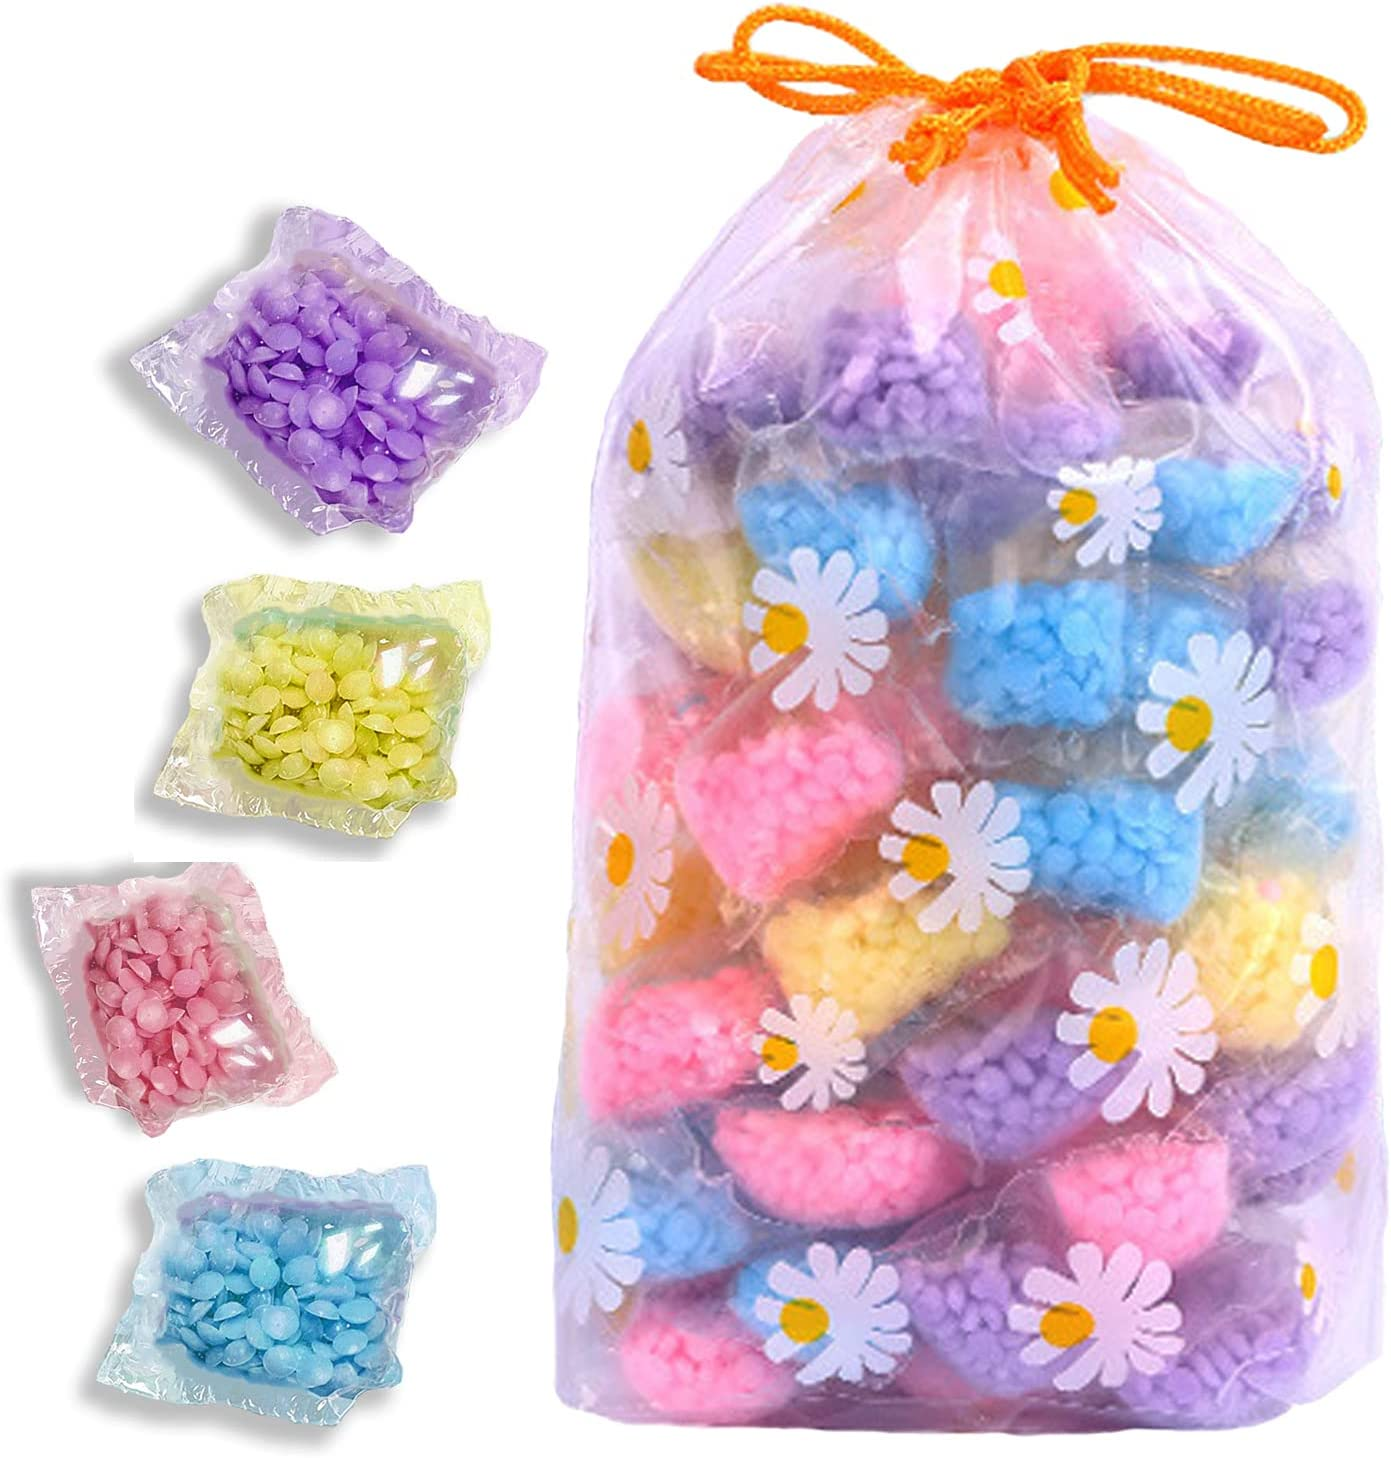 low-pricing Meeyeet in-Wash Scent Booster SALENEW very popular! Beads Package Independent Scen 60